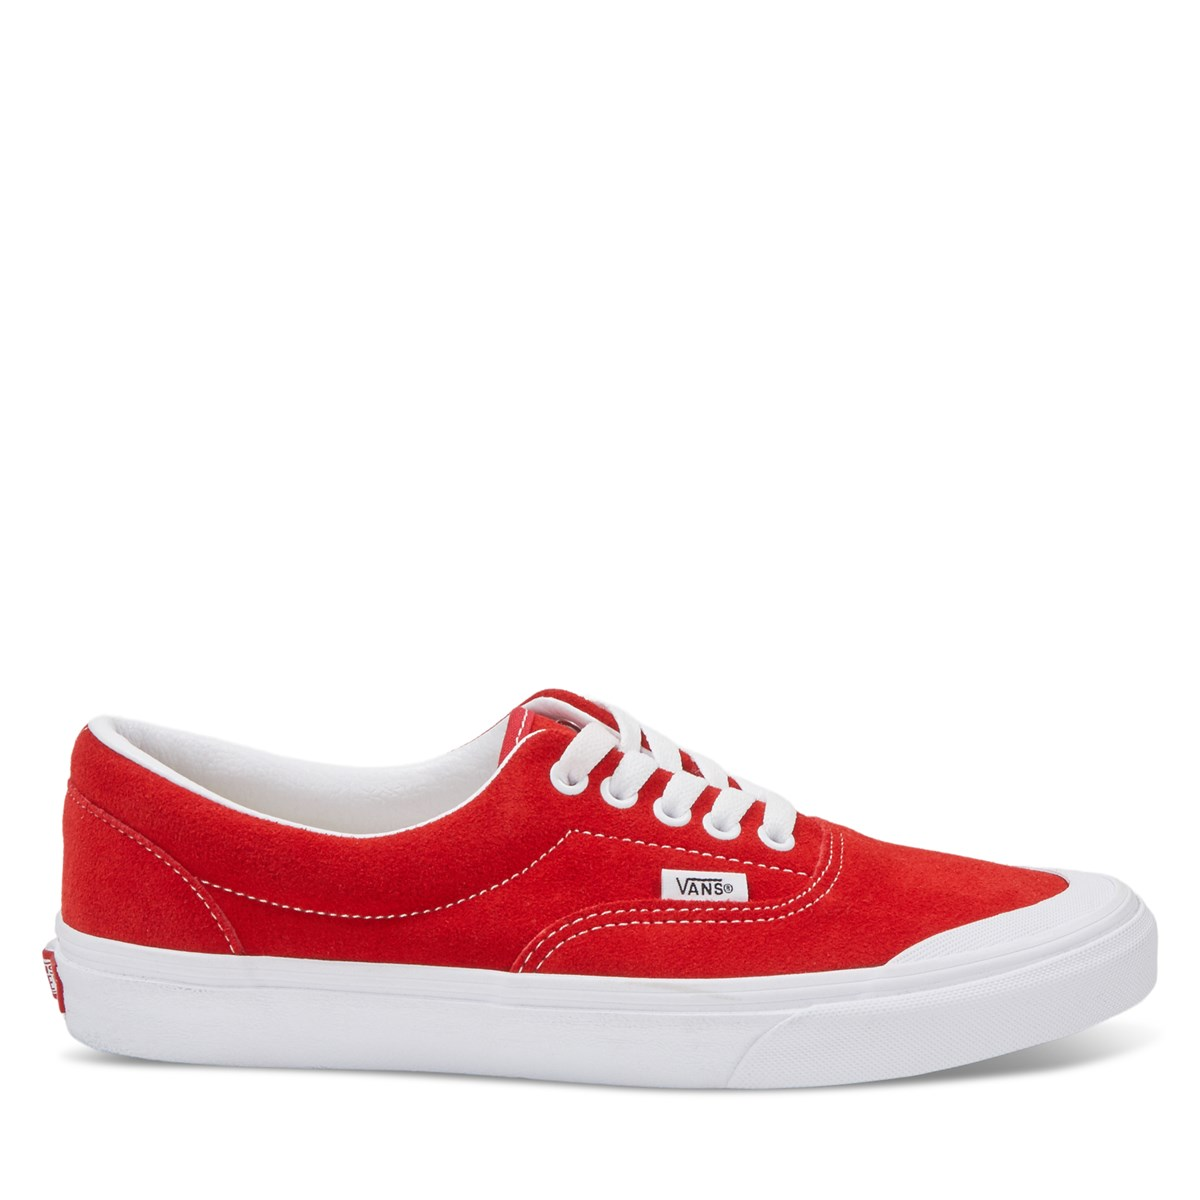 Men's Era TC Sneakers in Red Suede